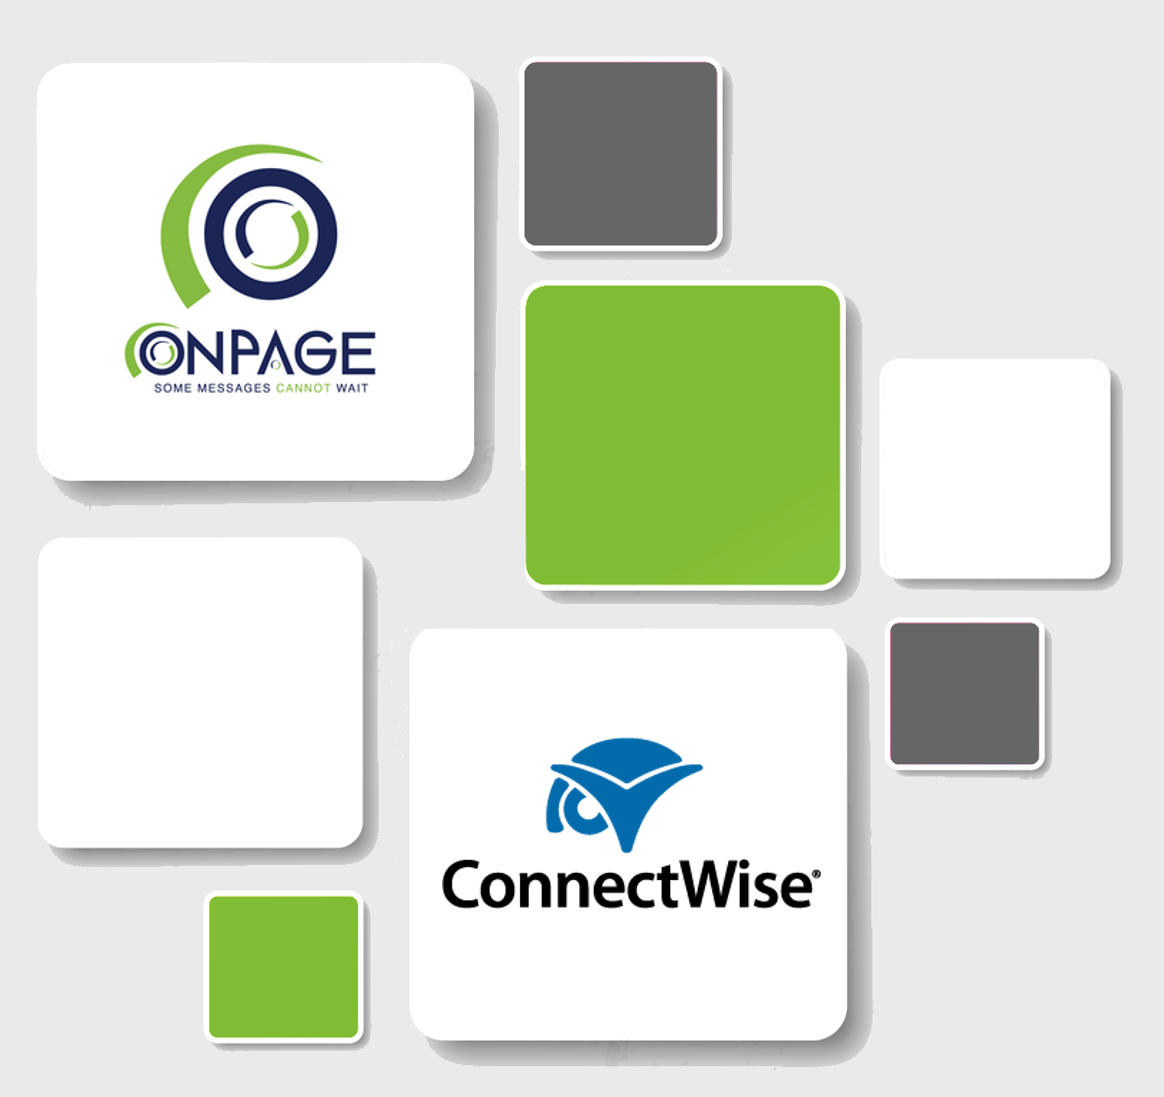 ConnectWise Integration